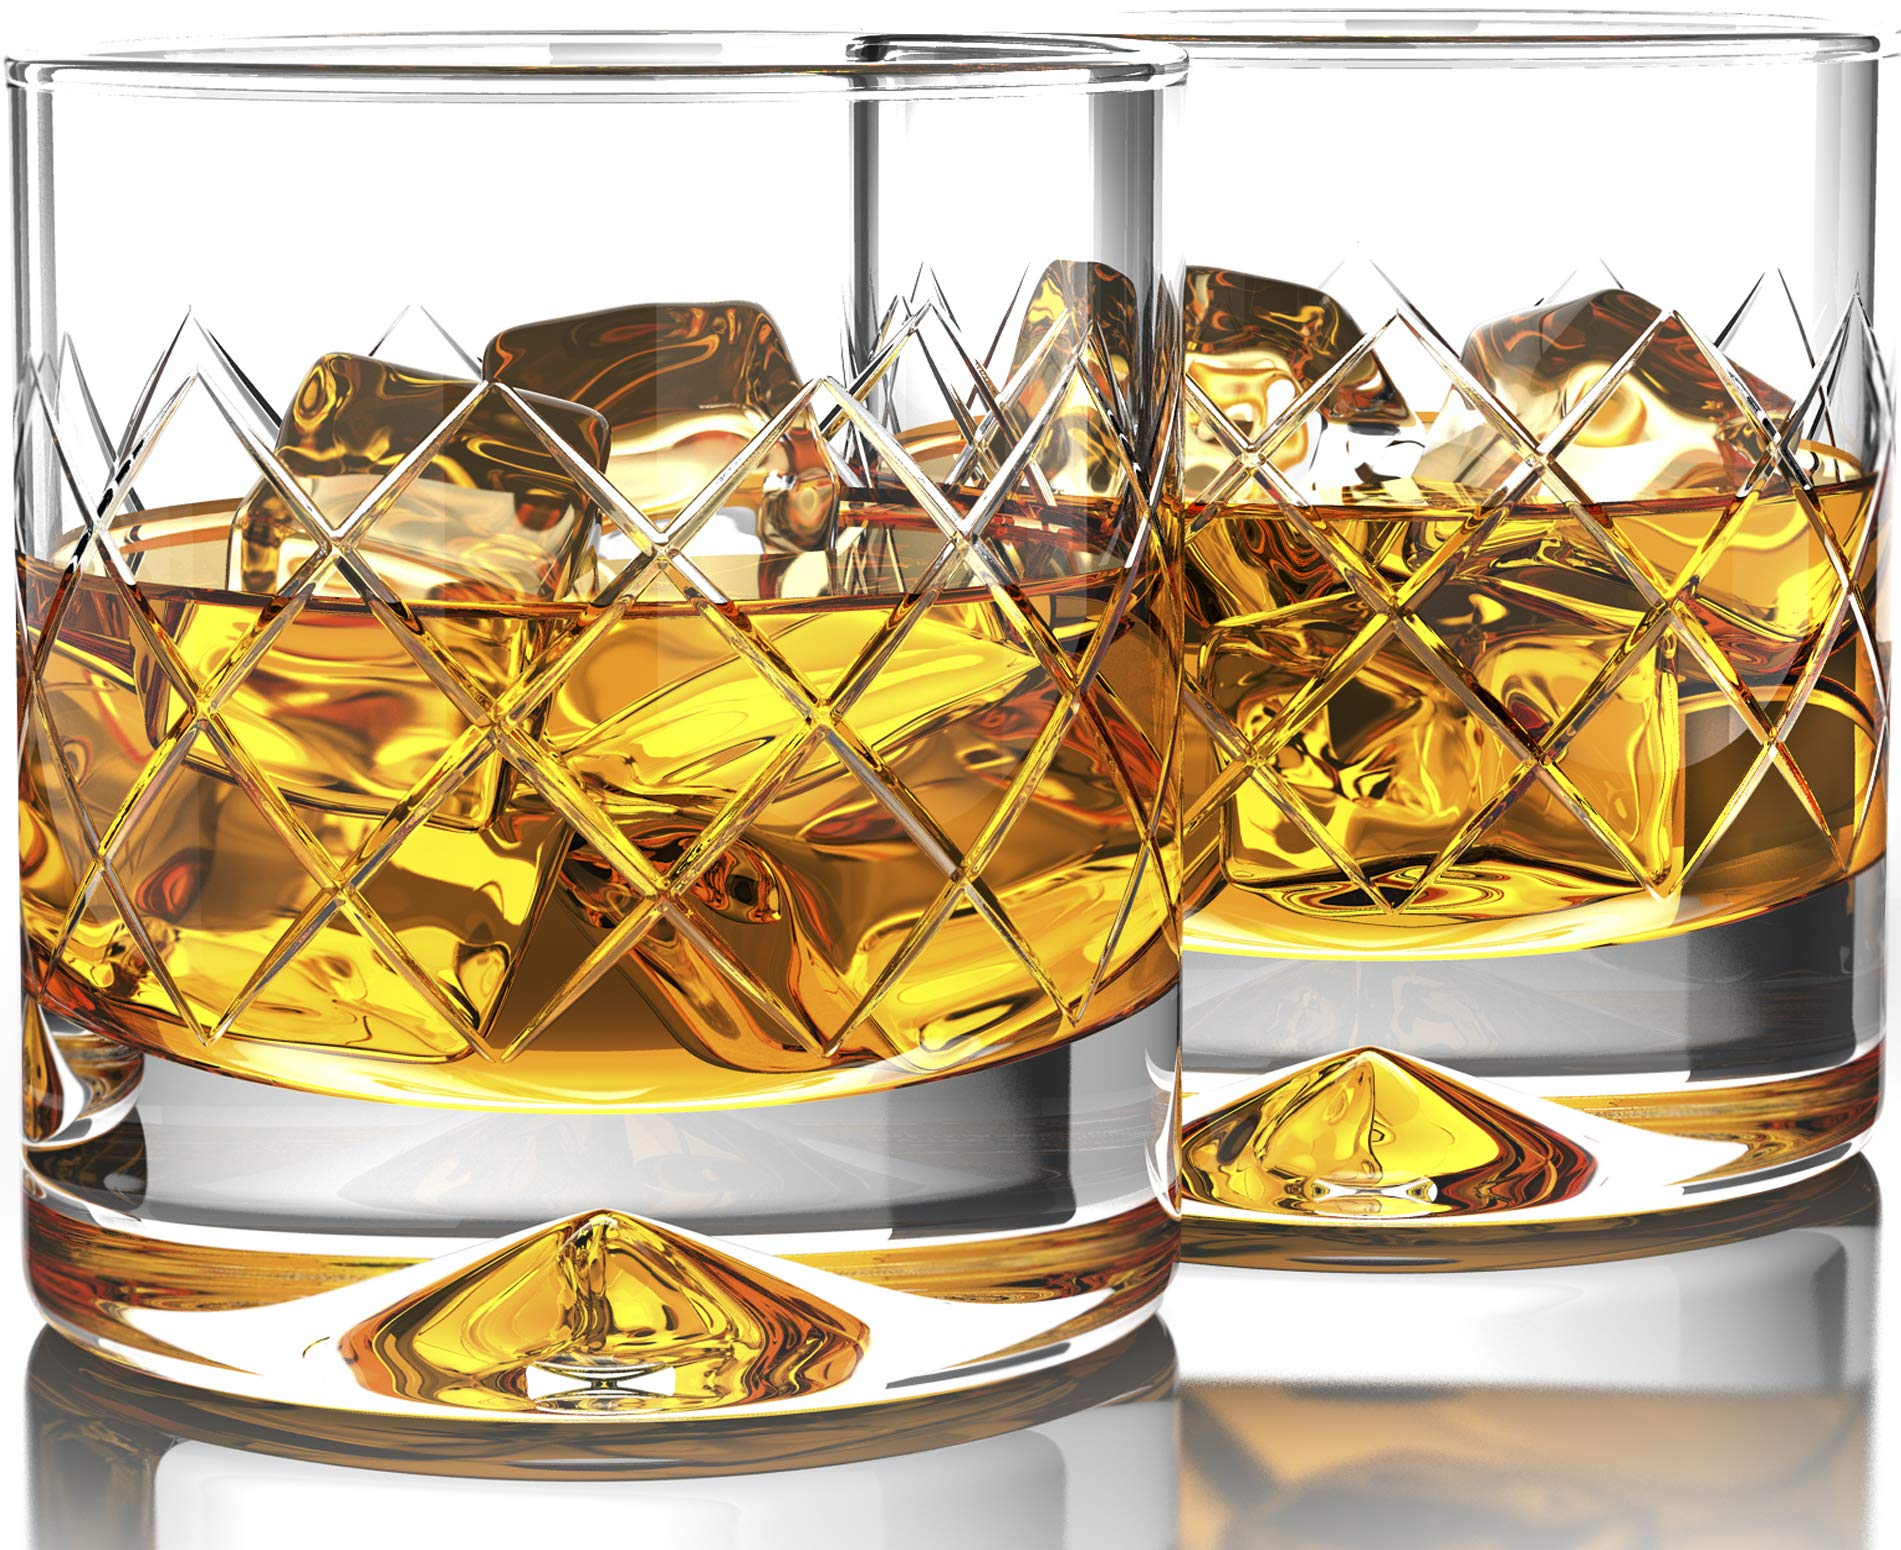 Premium Whiskey Glasses - Large - 12oz Set of 2 - Lead Free Hand Blown Crystal - Thick Weighted Bottom - Seamless Handmade Design - Perfect for Scotch, Bourbon, Manhattans, Old Fashioned's, Cocktails by Mofado